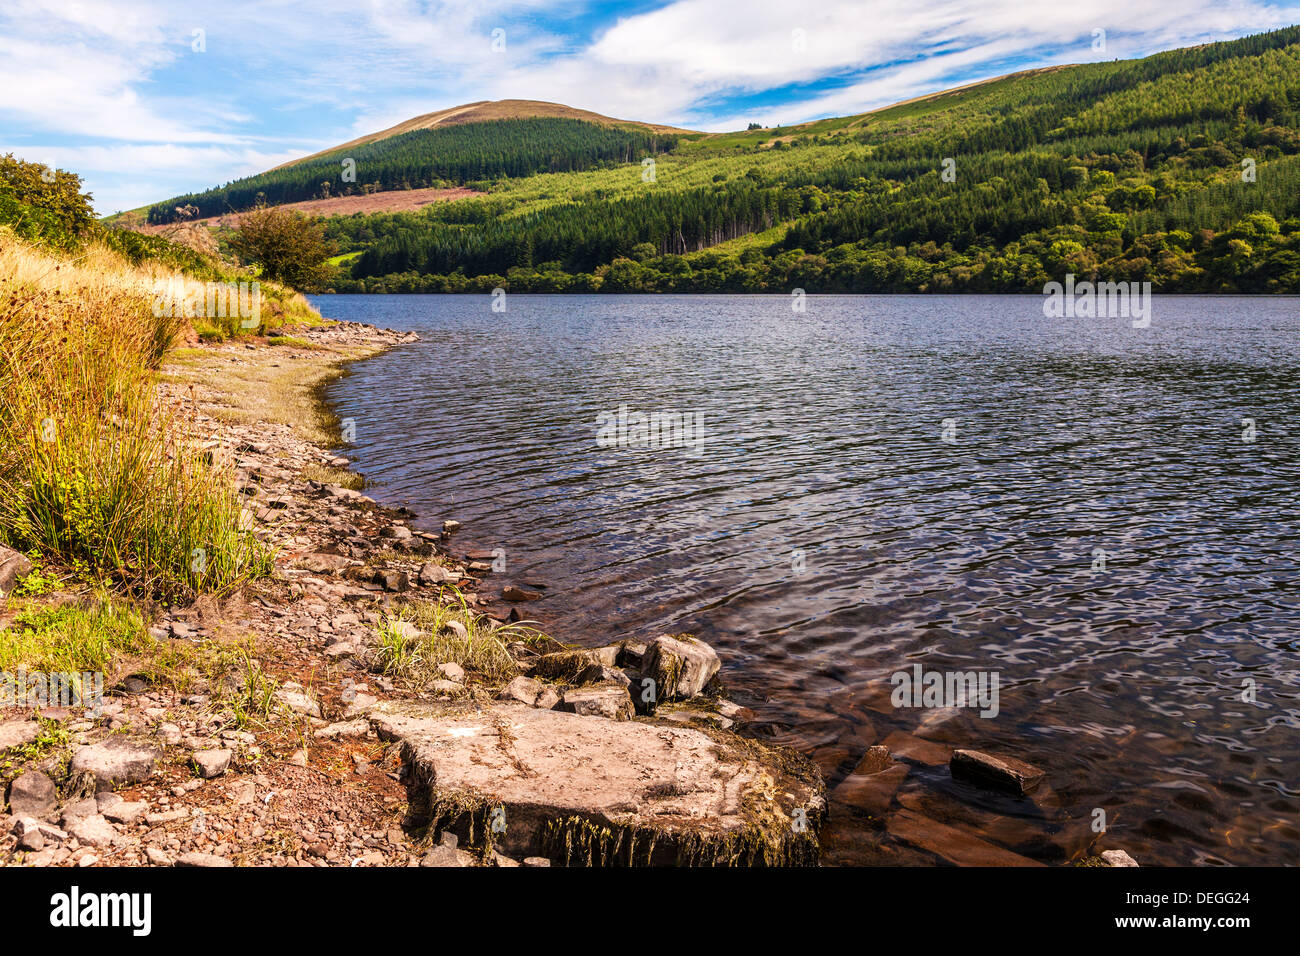 View over the Talybont Reservoir in the Brecon Beacons, Wales, UK - Stock Image